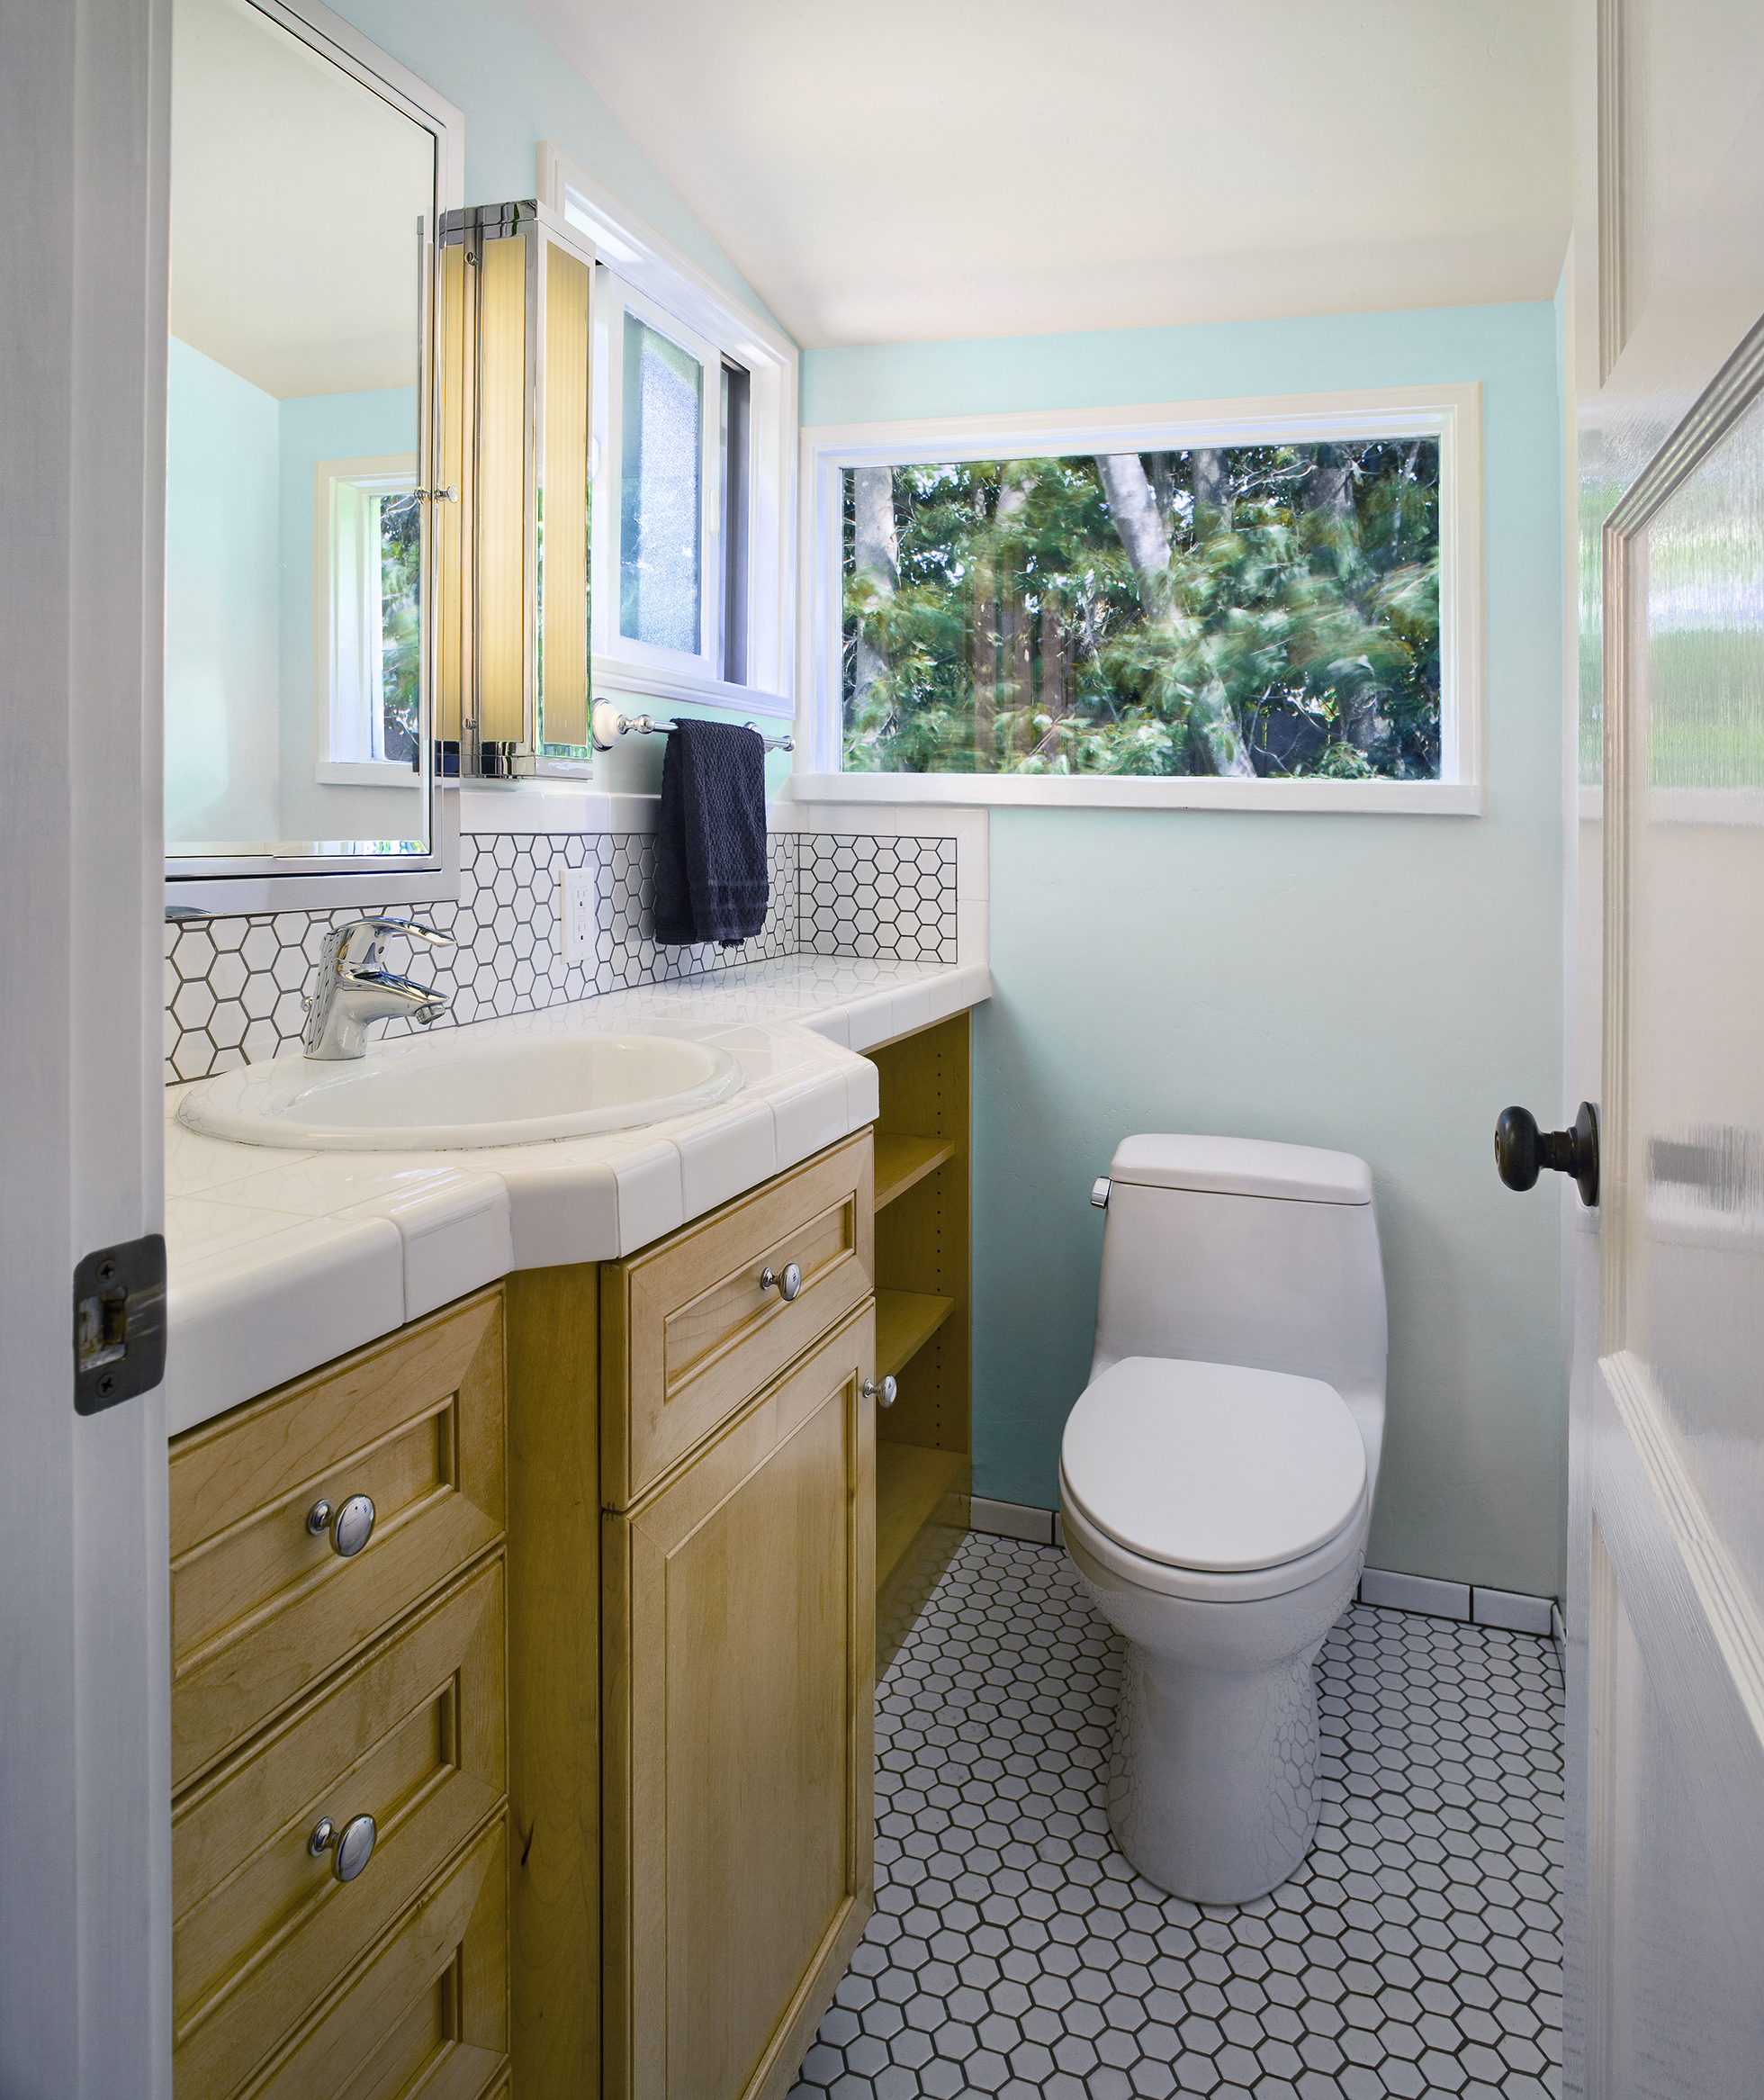 Light blue bathroom with white sink, toilet, and tile